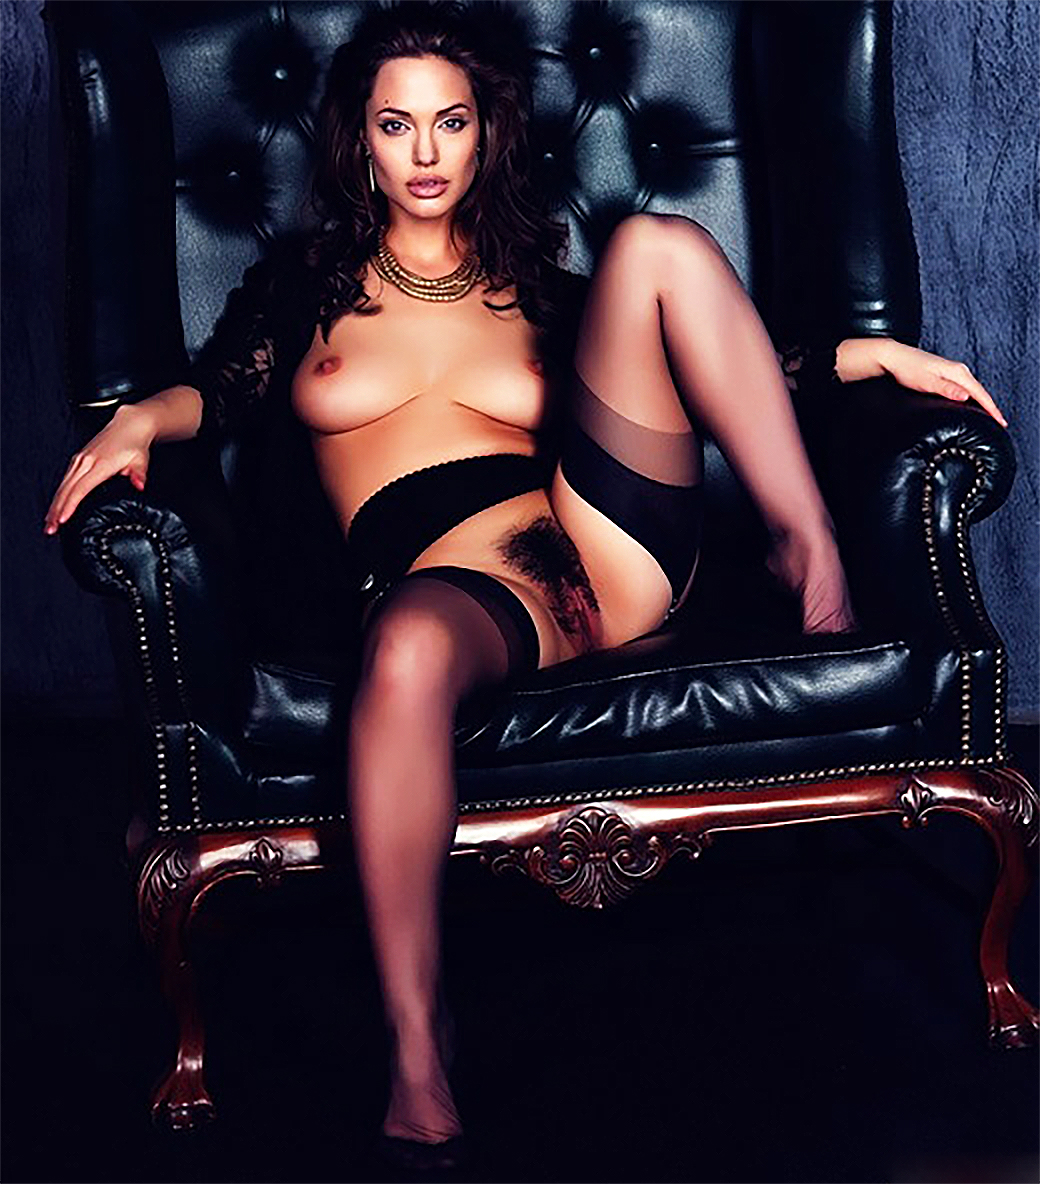 Angelina Jolie Naked Pics angelina jolie nude photos and videos | #thefappening